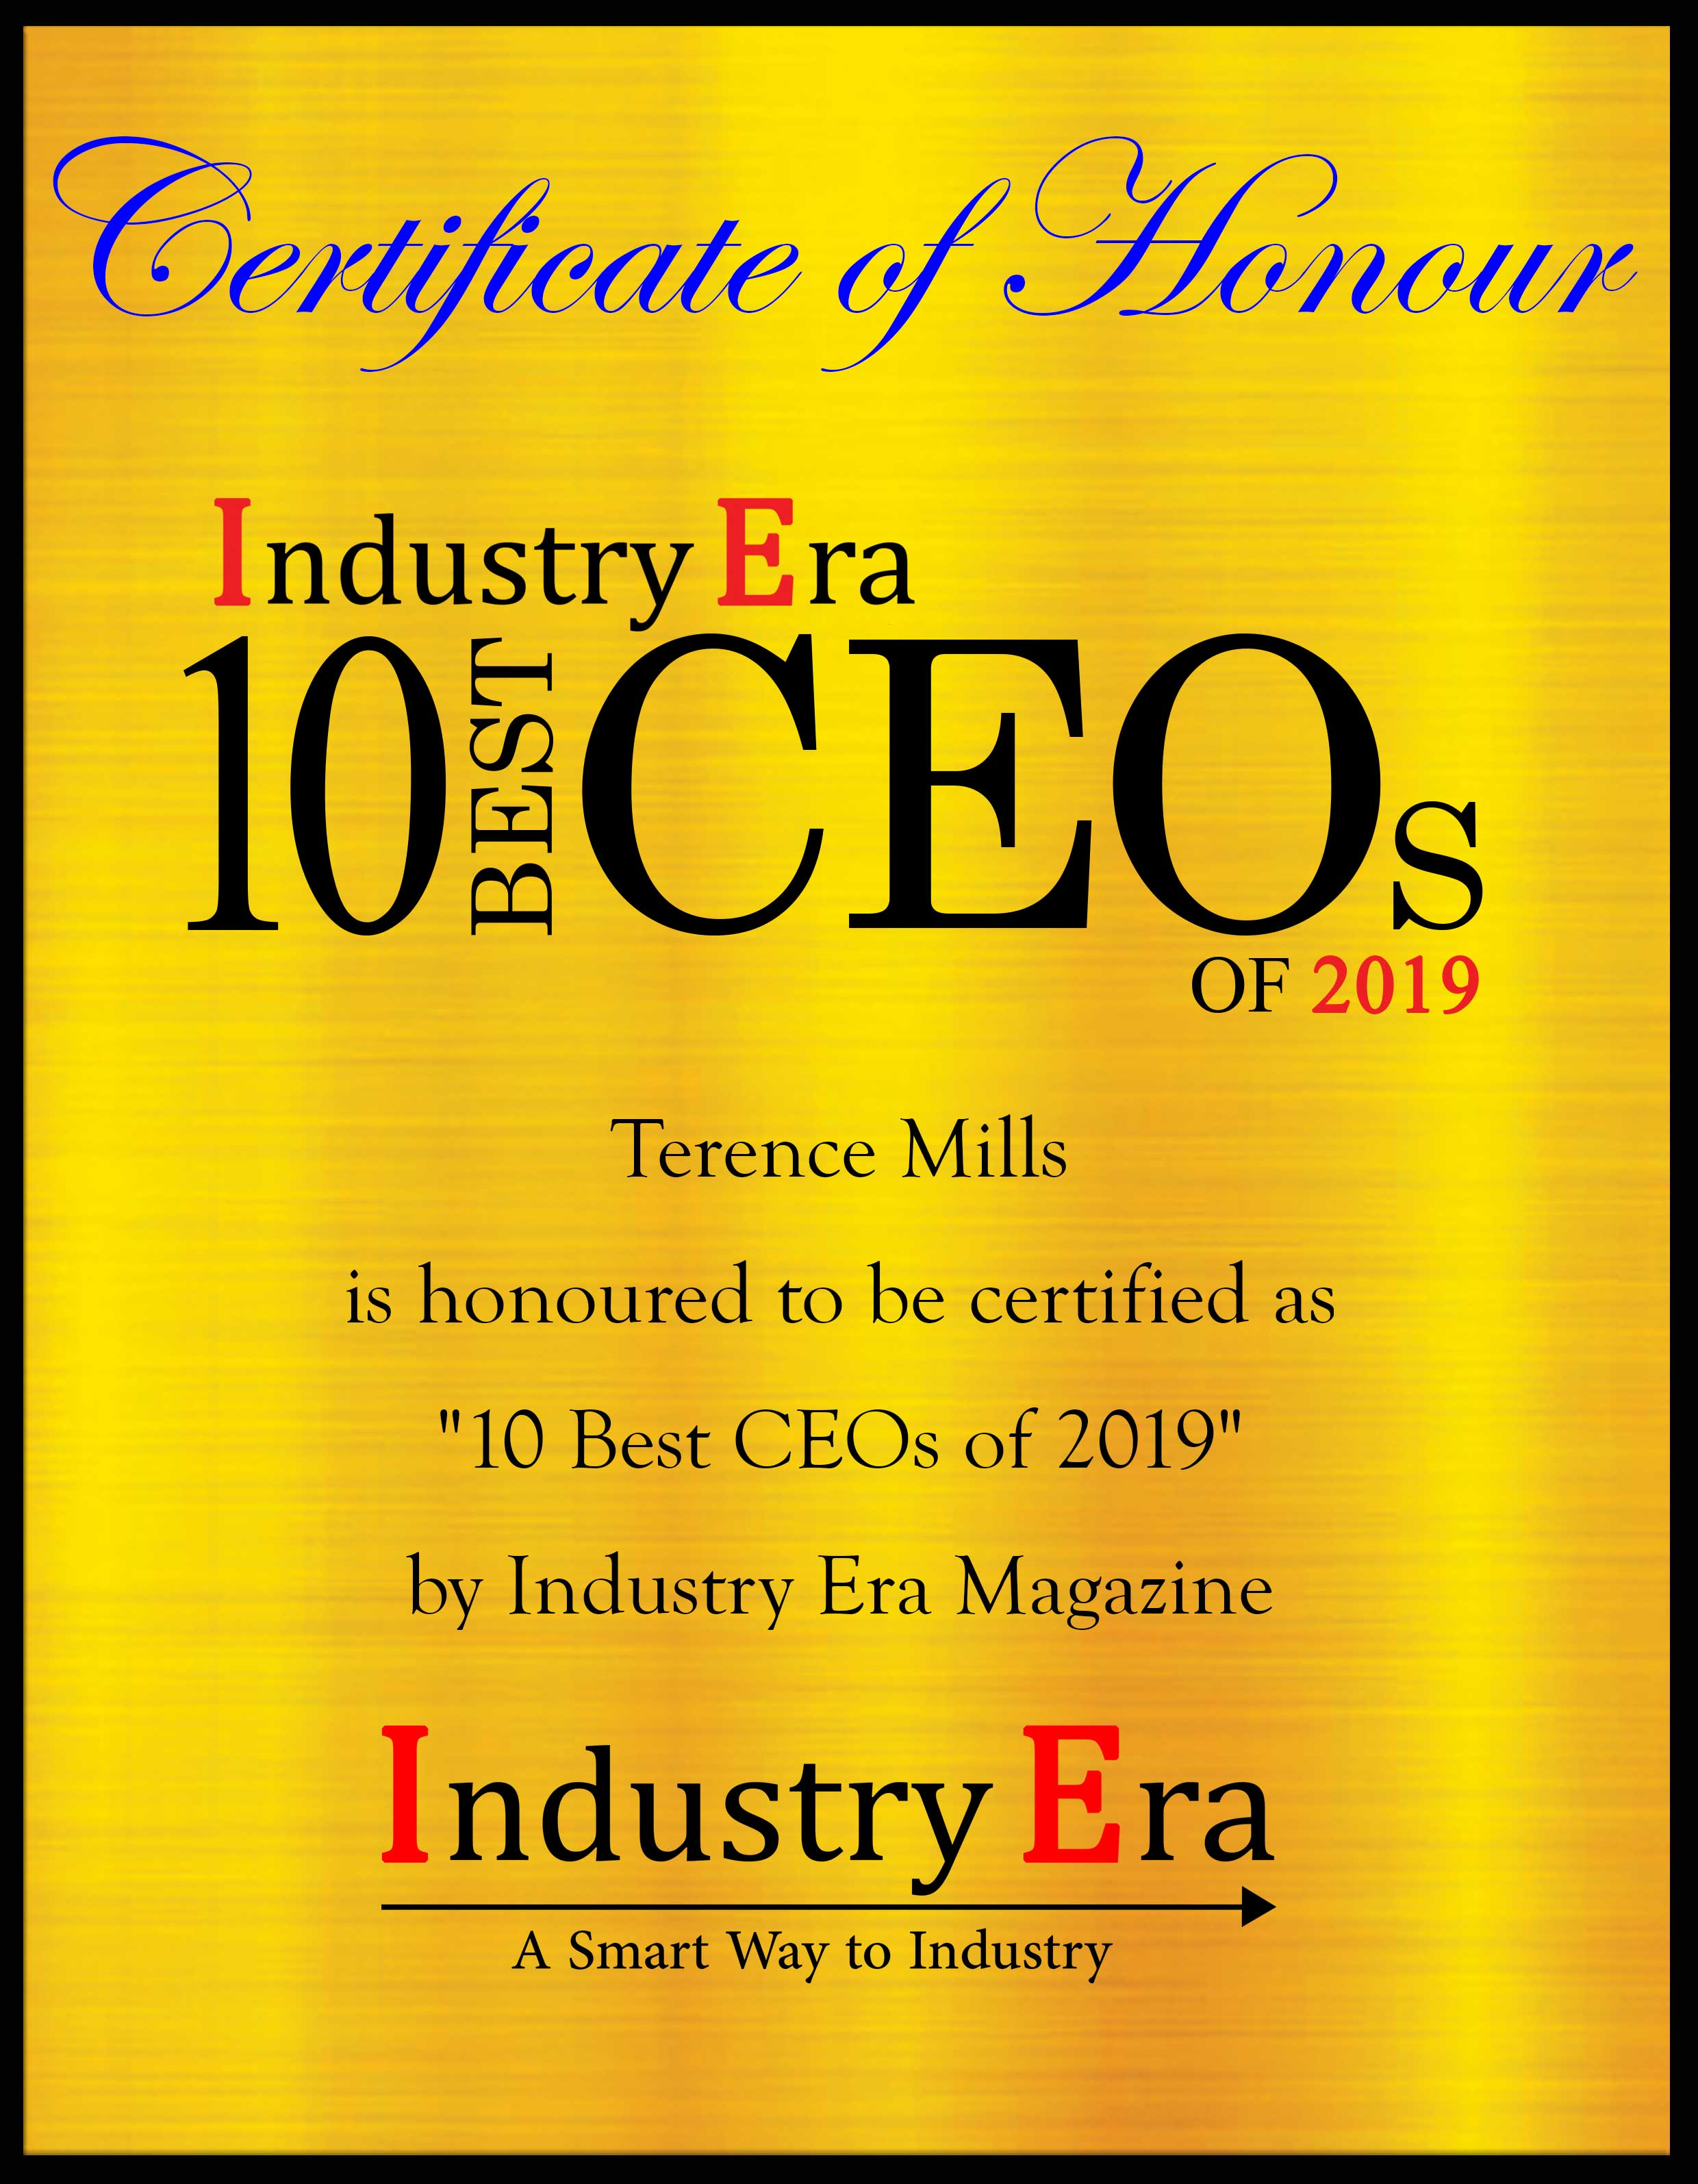 Terence Mills CEO & Chairman AI.io, Best CEOs of 2019 Certificate